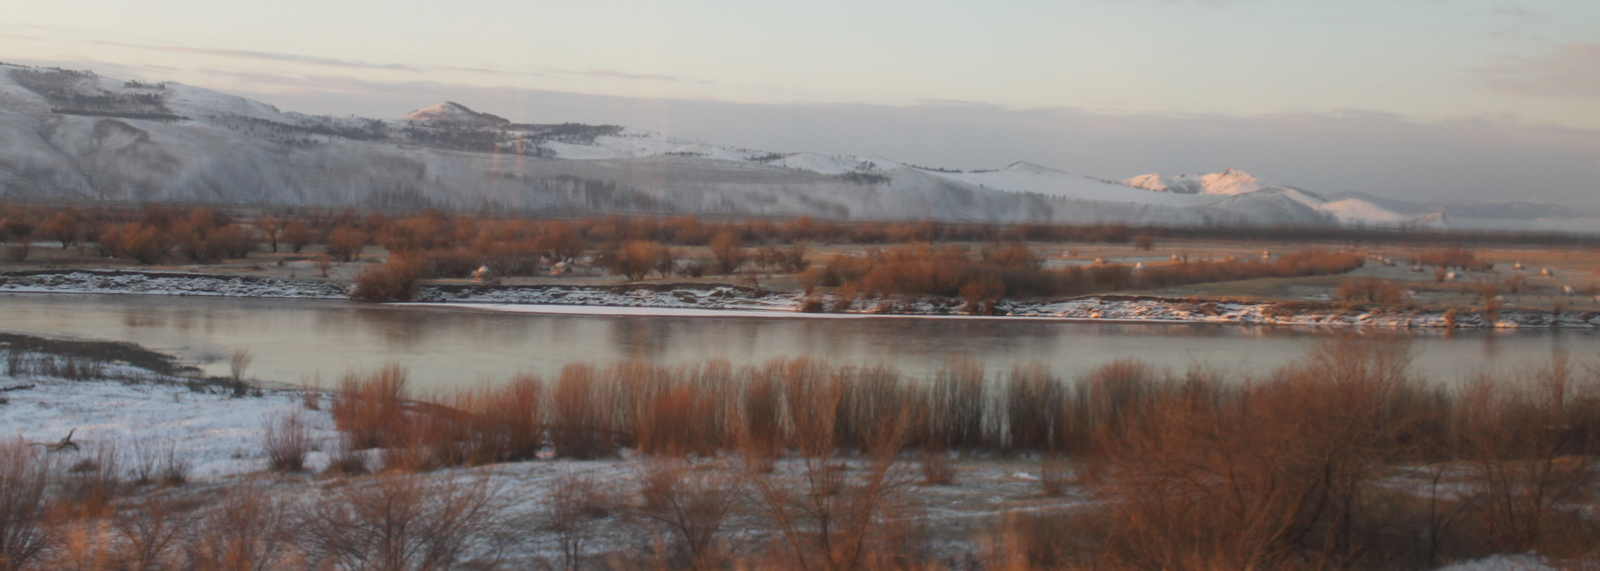 From the train, Syberia